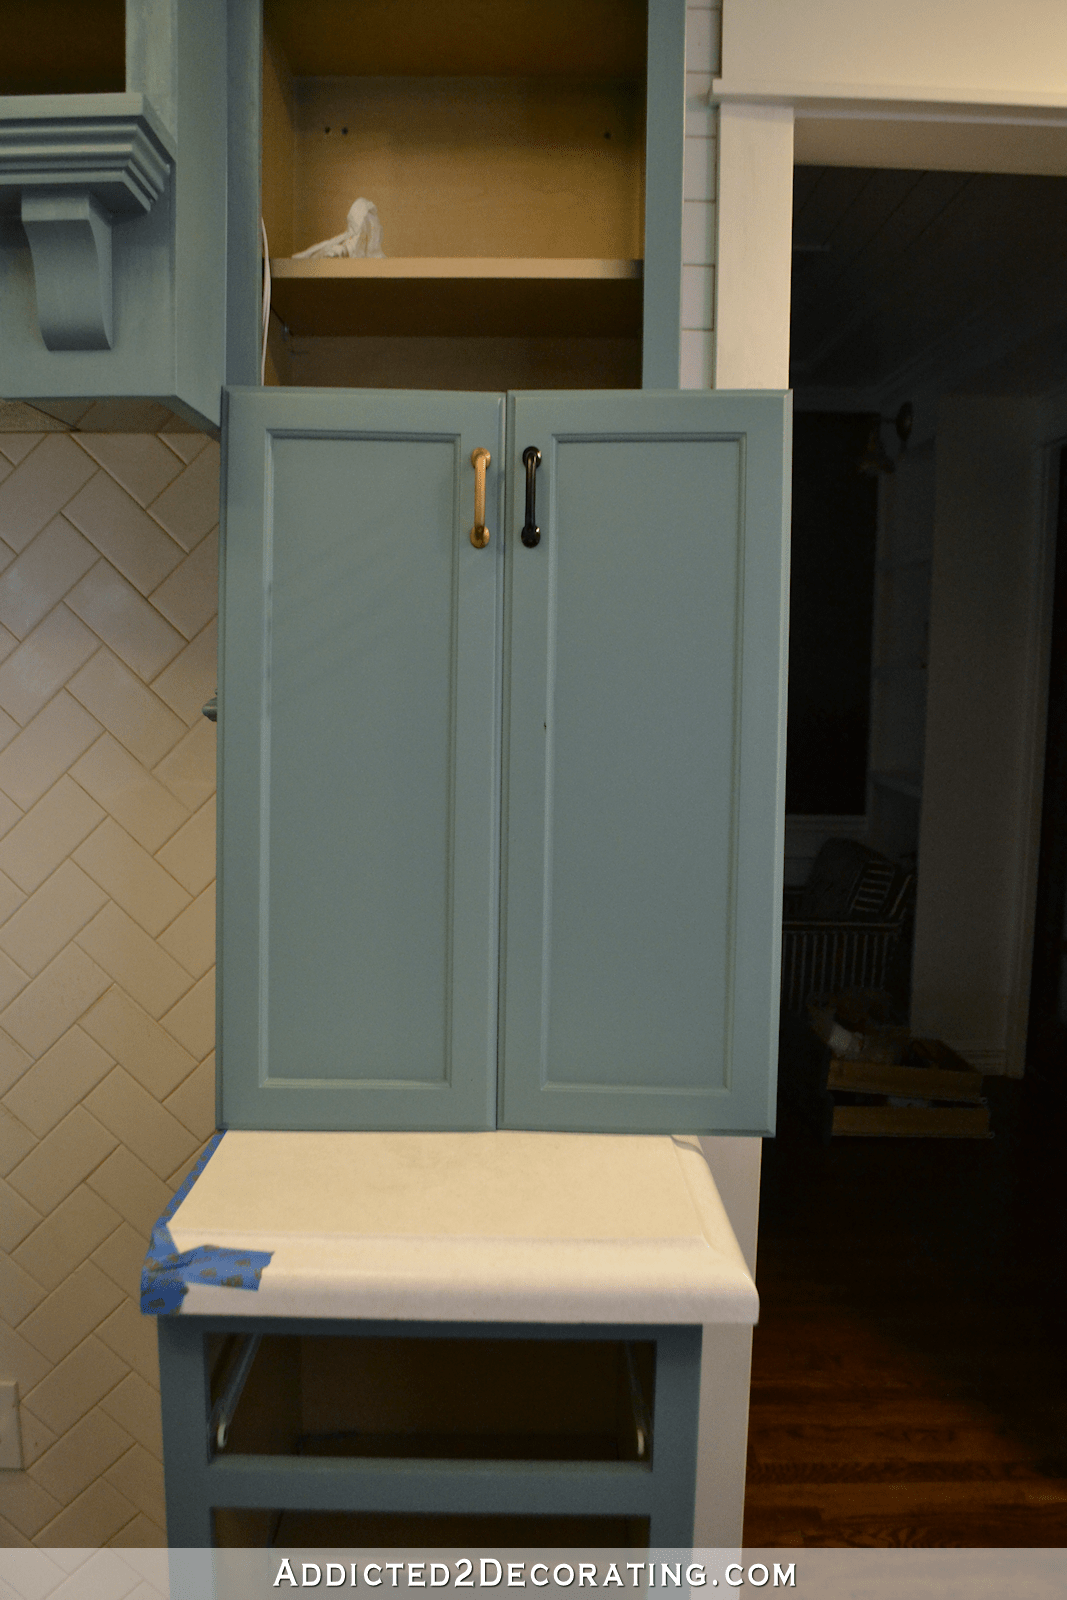 teal kitchen cabinet progress plus cabinet hardware black or brass kitchen cabinet hardware kitchen cabinet hardware brass or black on teal cabinets